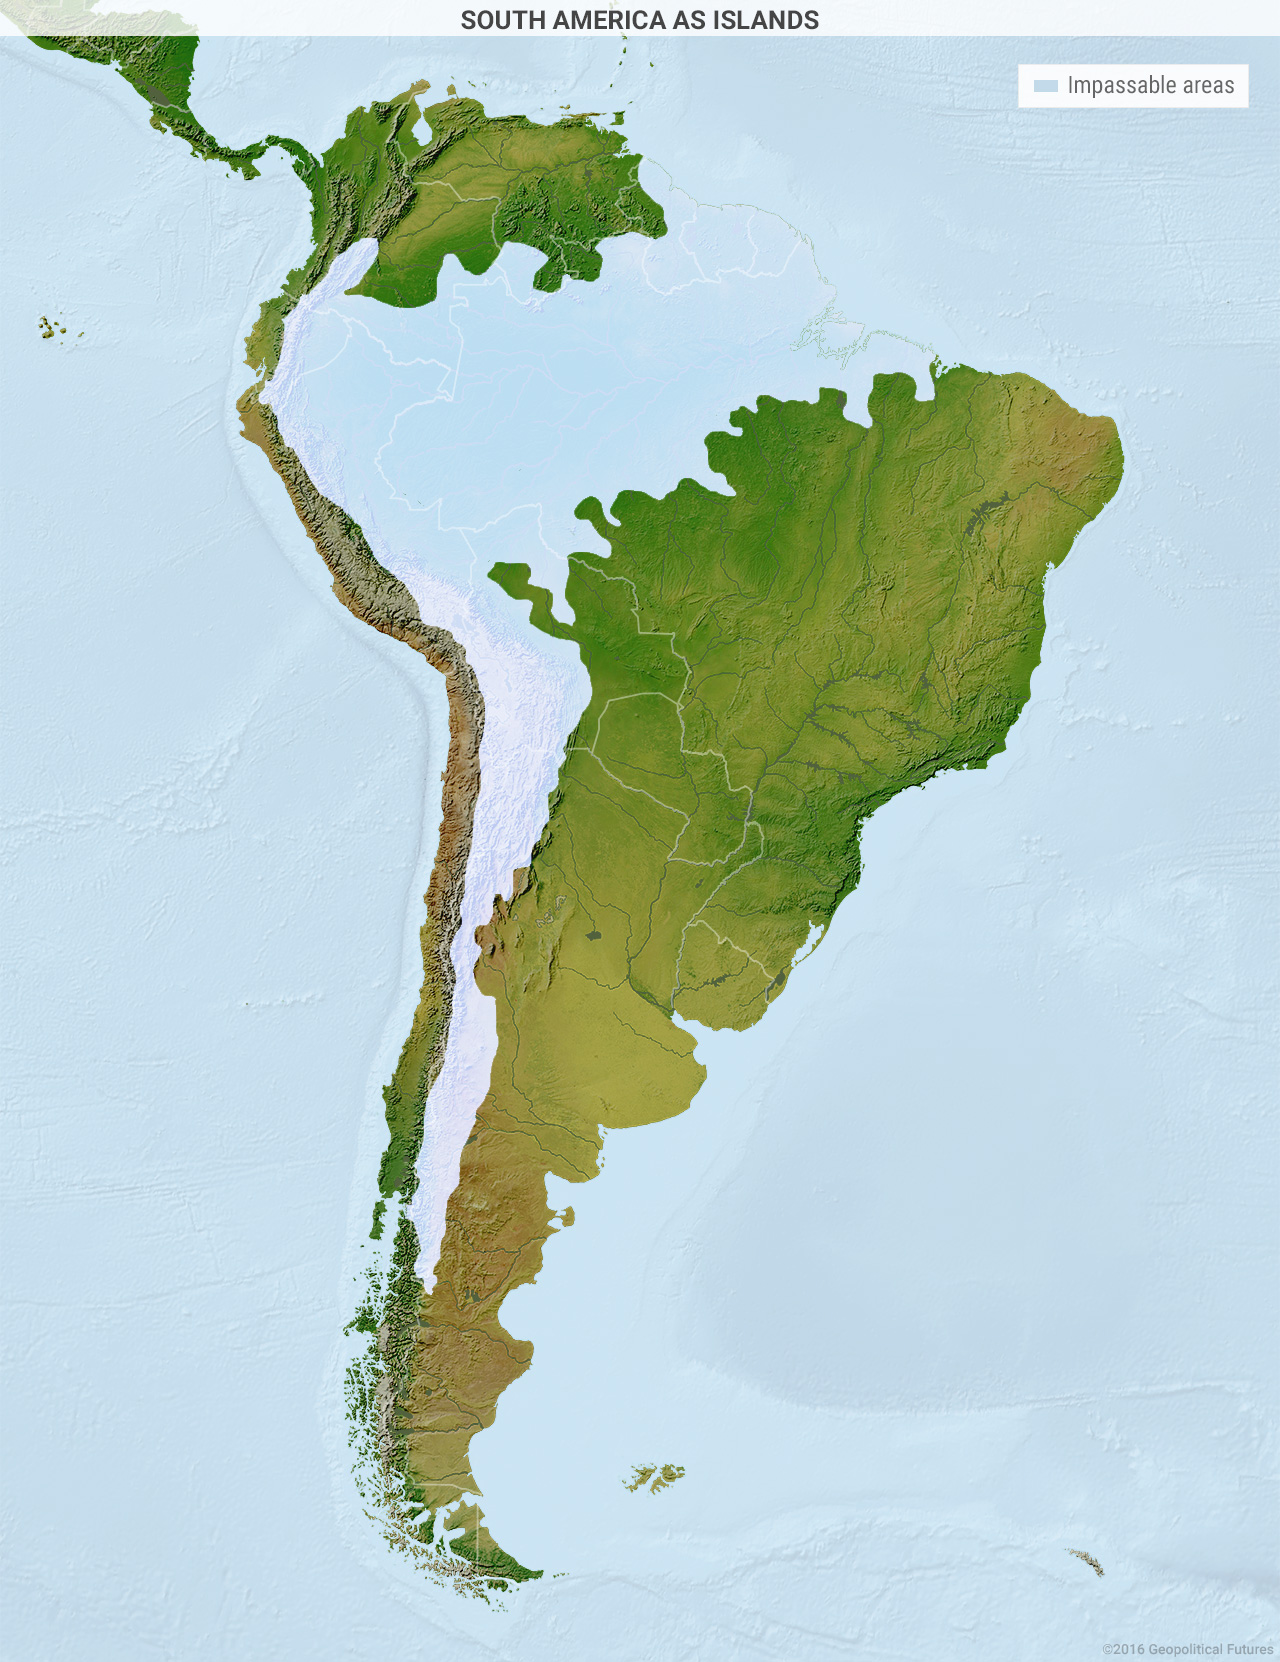 South America as Islands